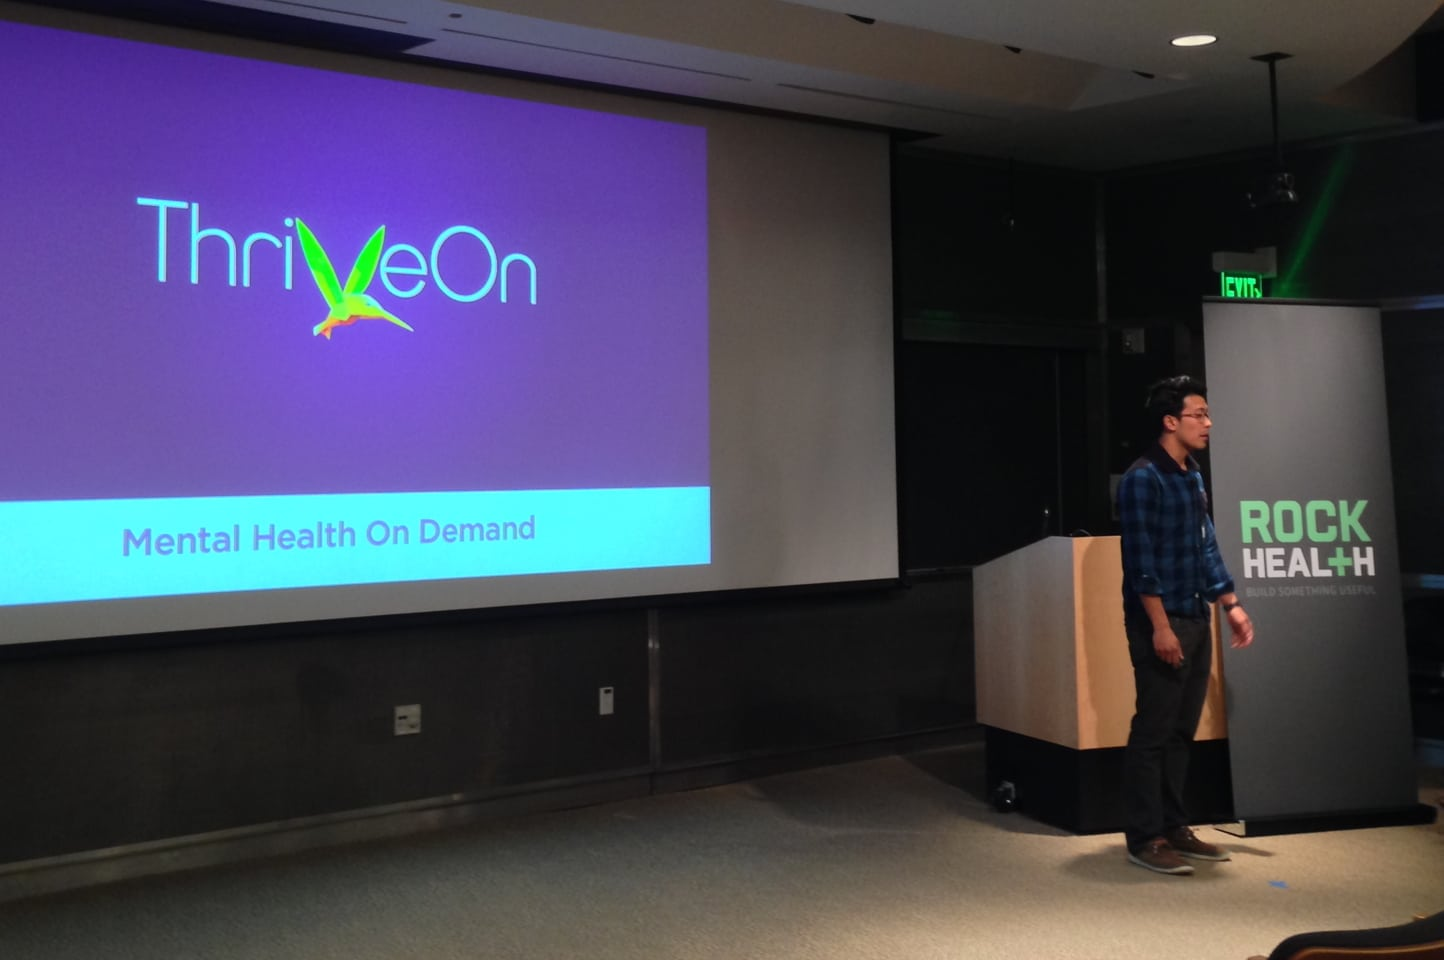 """ThriveOn is developing a Web- and mobile-based programs designed to make methal health treatment more accessible to patients. Algorithms assess patients' answers to questionnaires and match them with reading material, videos, surveys, and journaling tools, backed by a remote coach who """"delivers feedback and ensures high compliance,"""" says co-founder Alejandro Foung."""